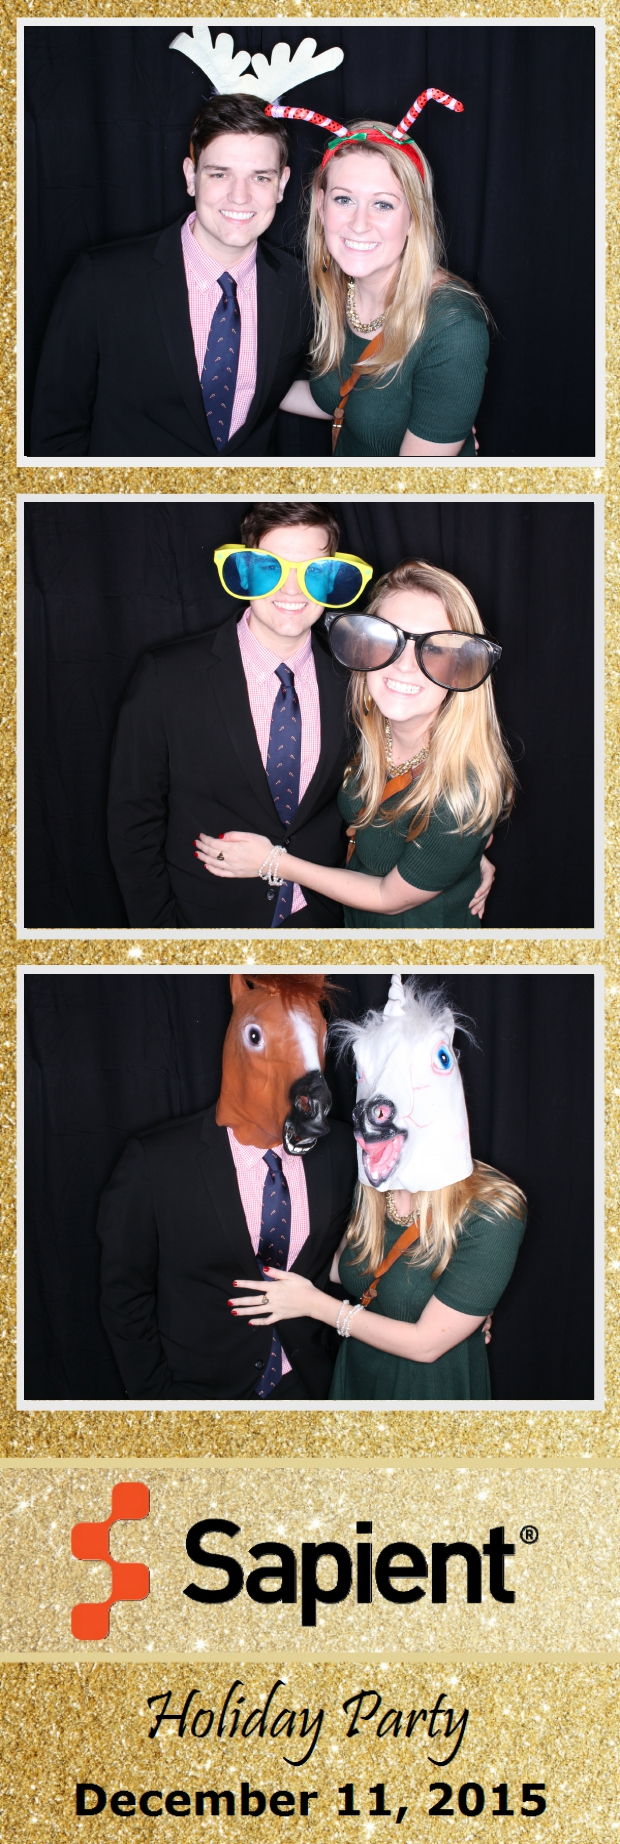 Guest House Events Photo Booth Sapient Holiday Party (12).jpg